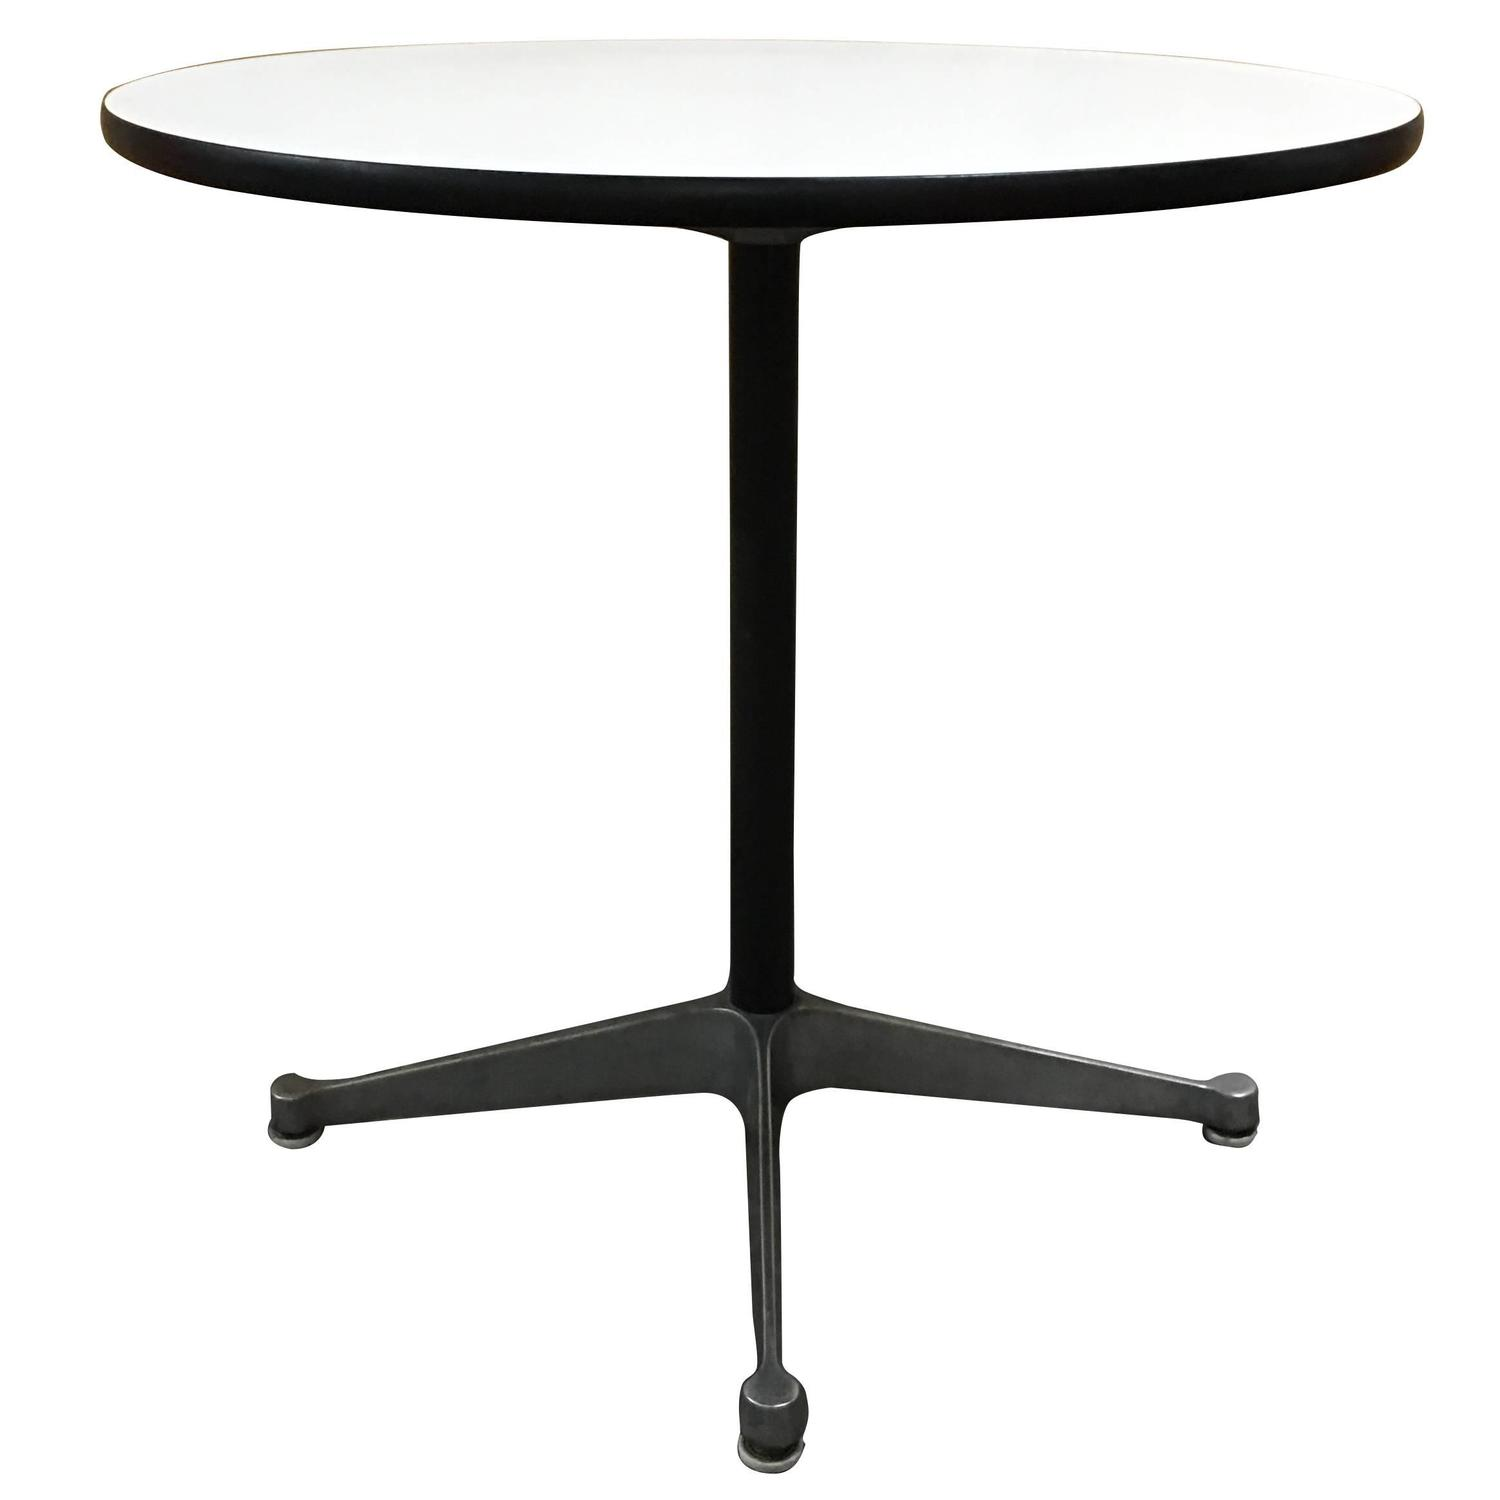 herman miller eames rare dining table for sale at 1stdibs. Black Bedroom Furniture Sets. Home Design Ideas